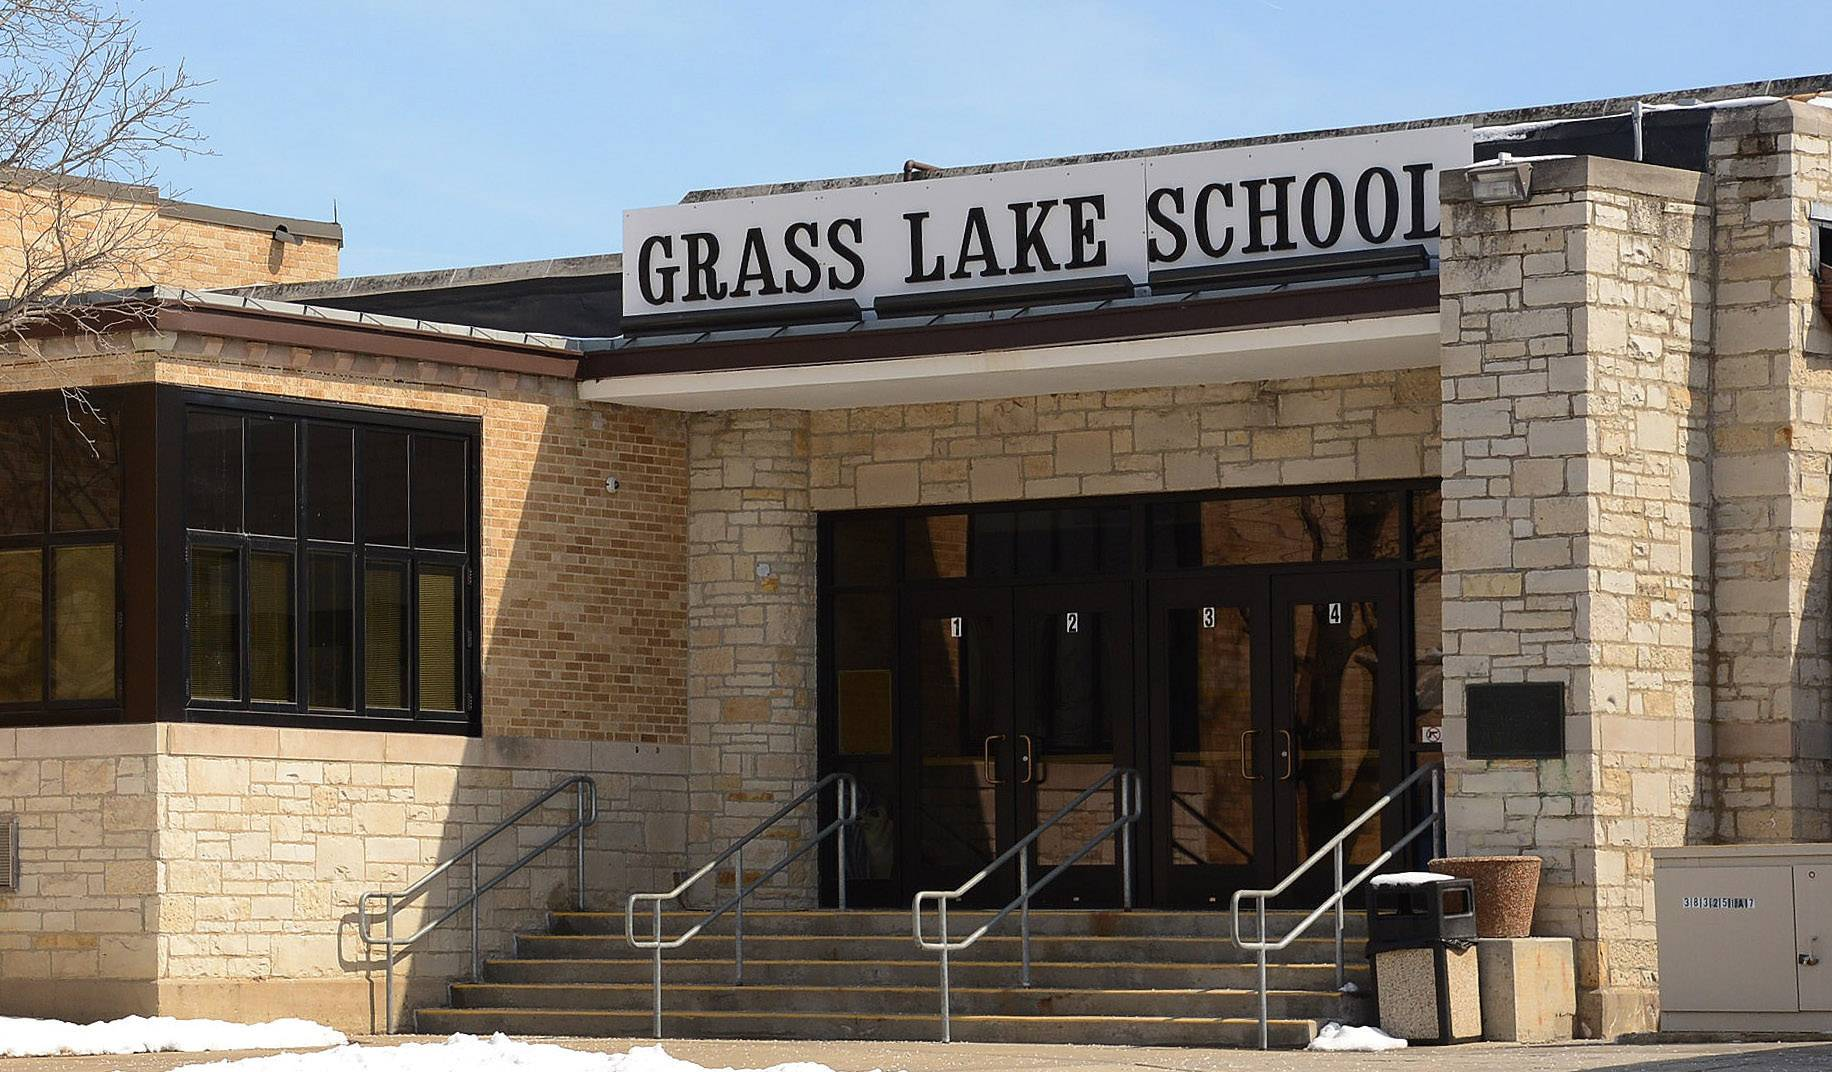 Building project, per pupil spending issues in Grass Lake District 36 race